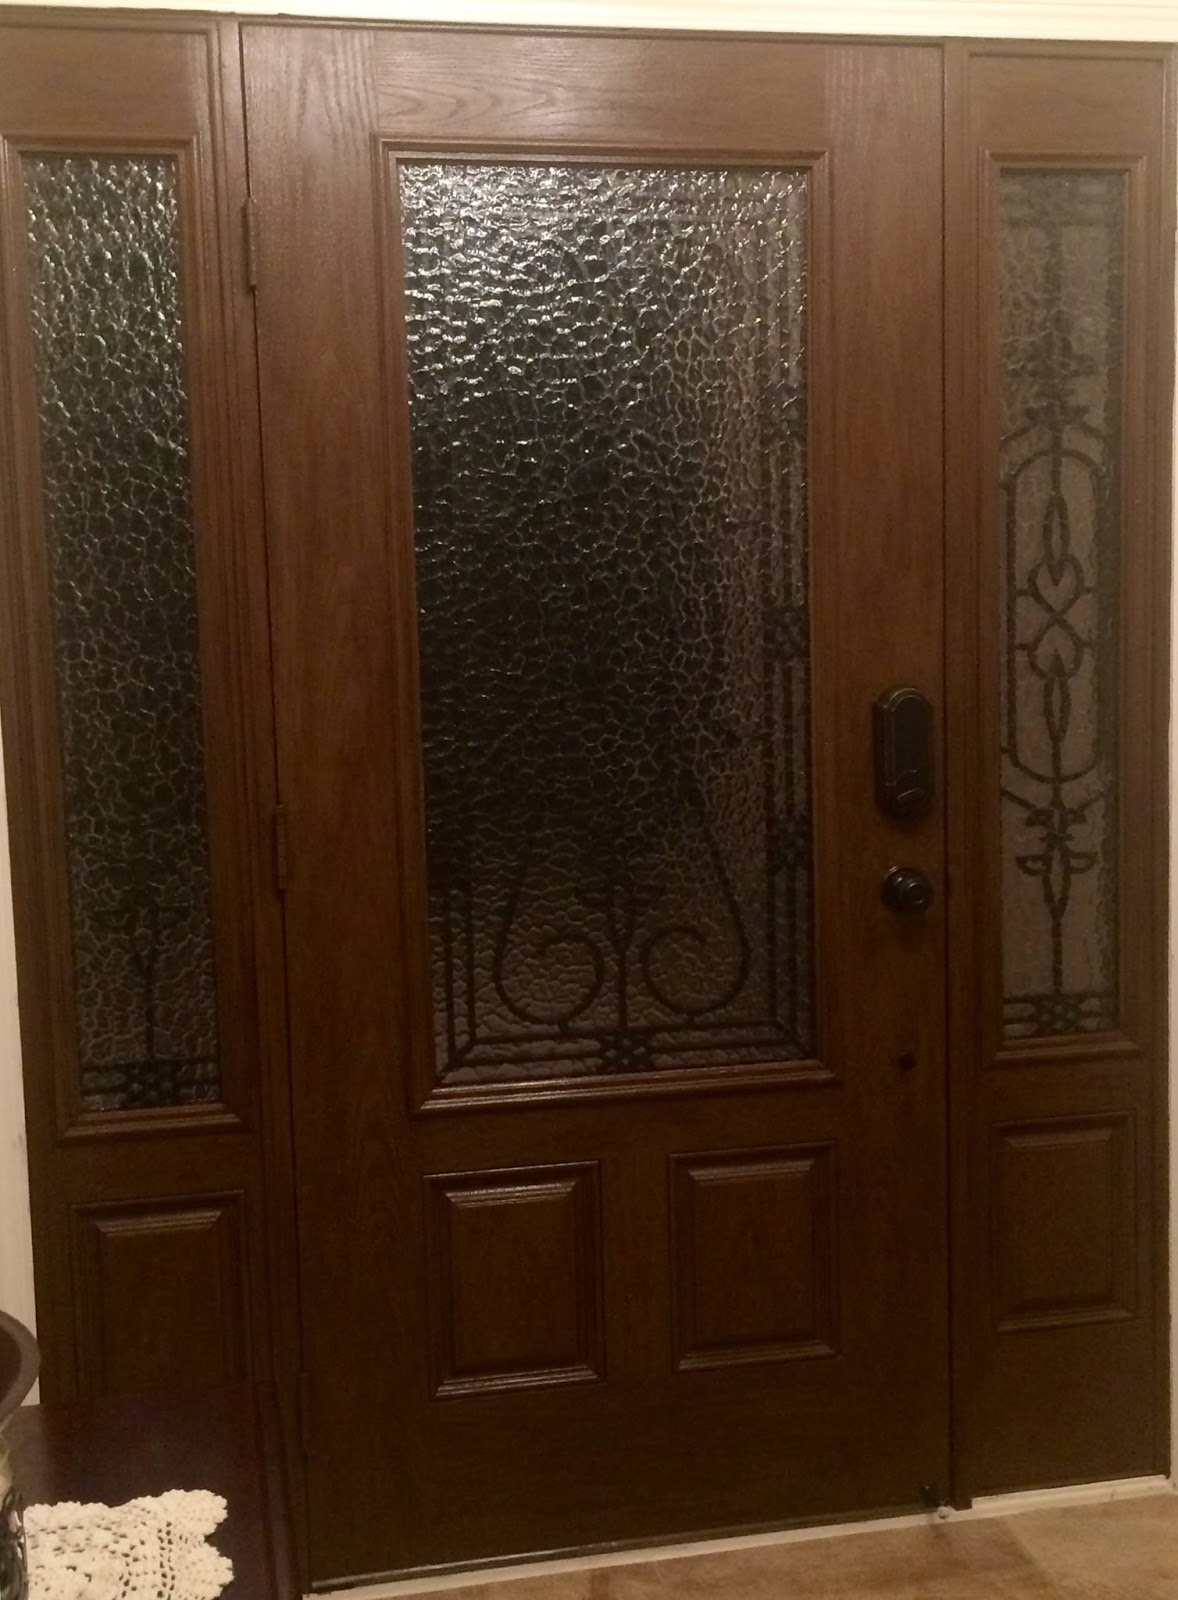 Our Diy Home Improvement Projects Completed Painted My Fiberglass Door Then Stained It With